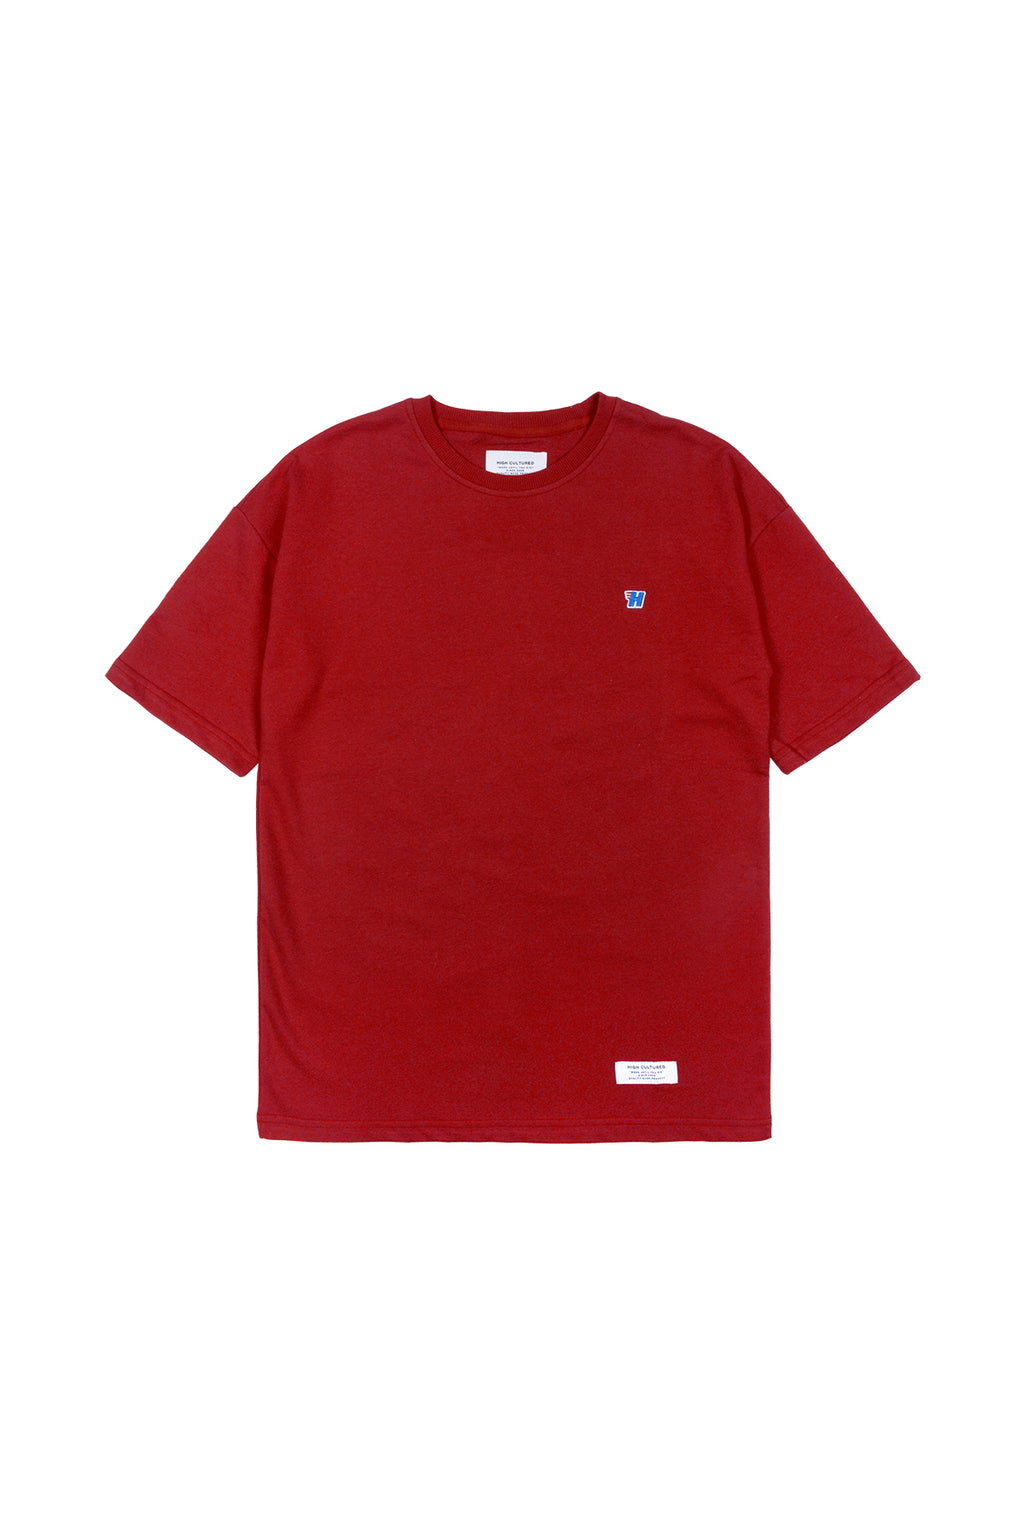 'H' WING OVERSIZED TEE | RED - 758